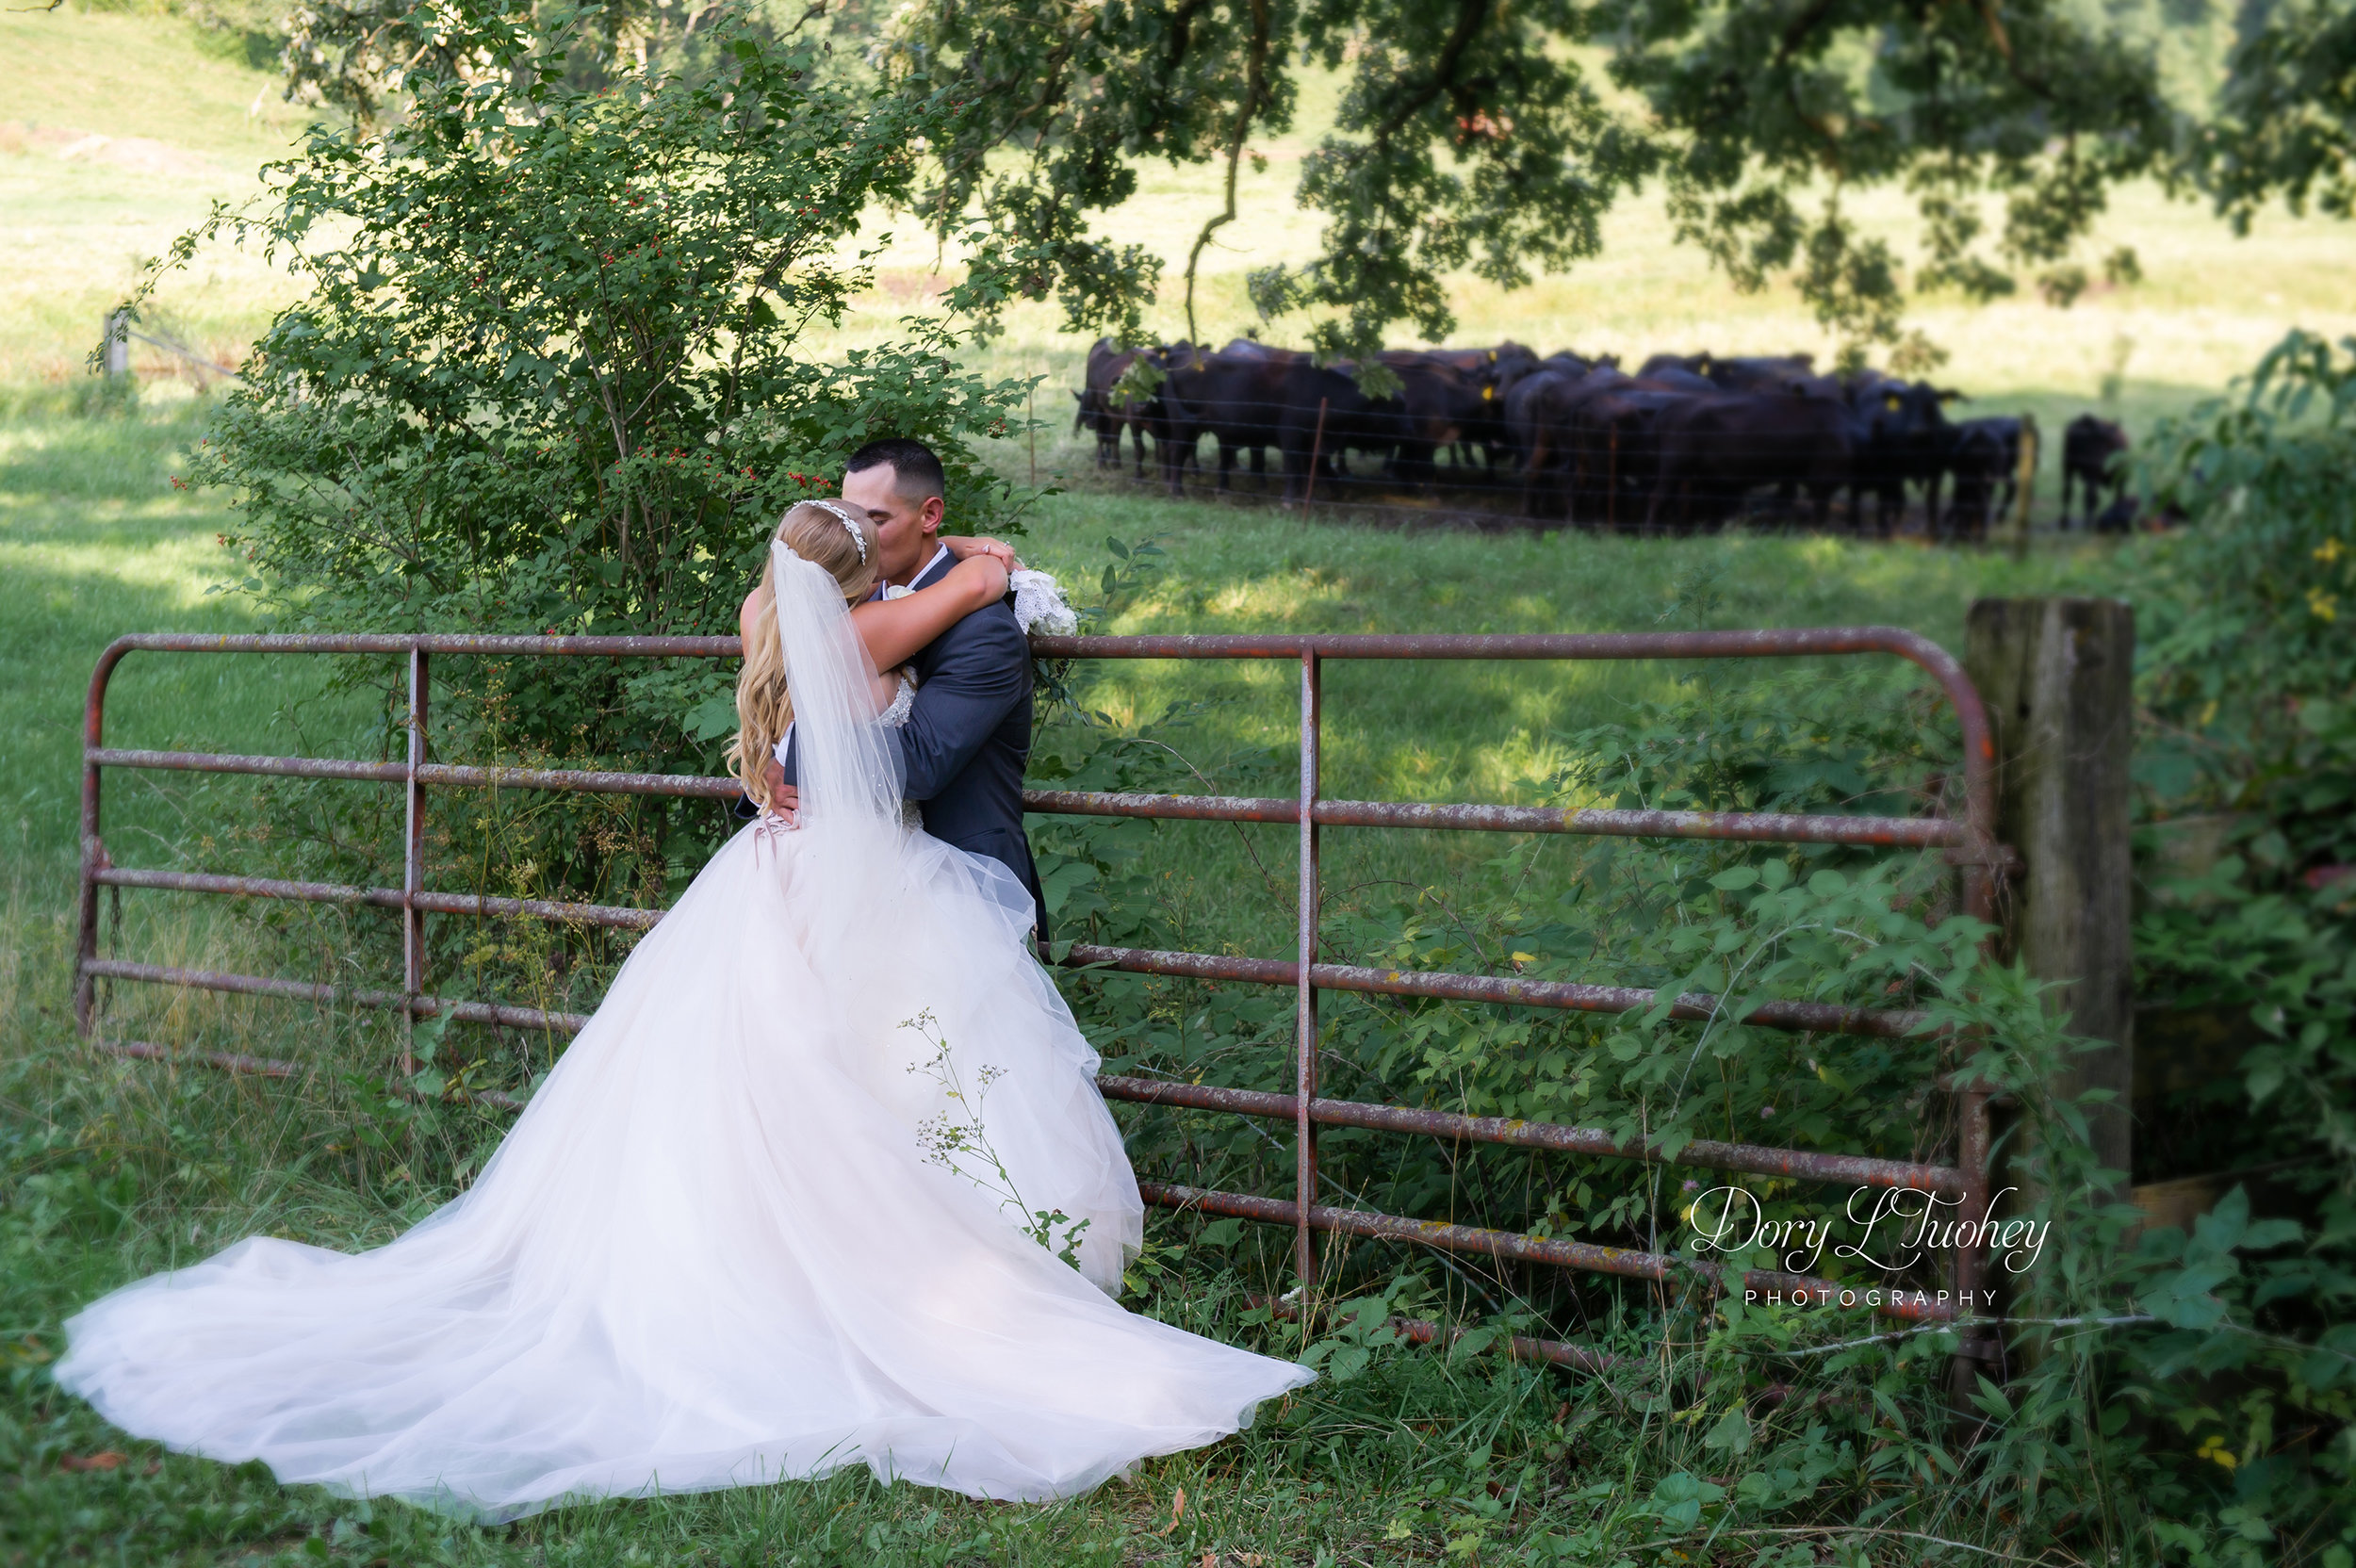 Dory_wedding_farm_country_equestrian_horses_bride_groom_apple_valley_05.jpg